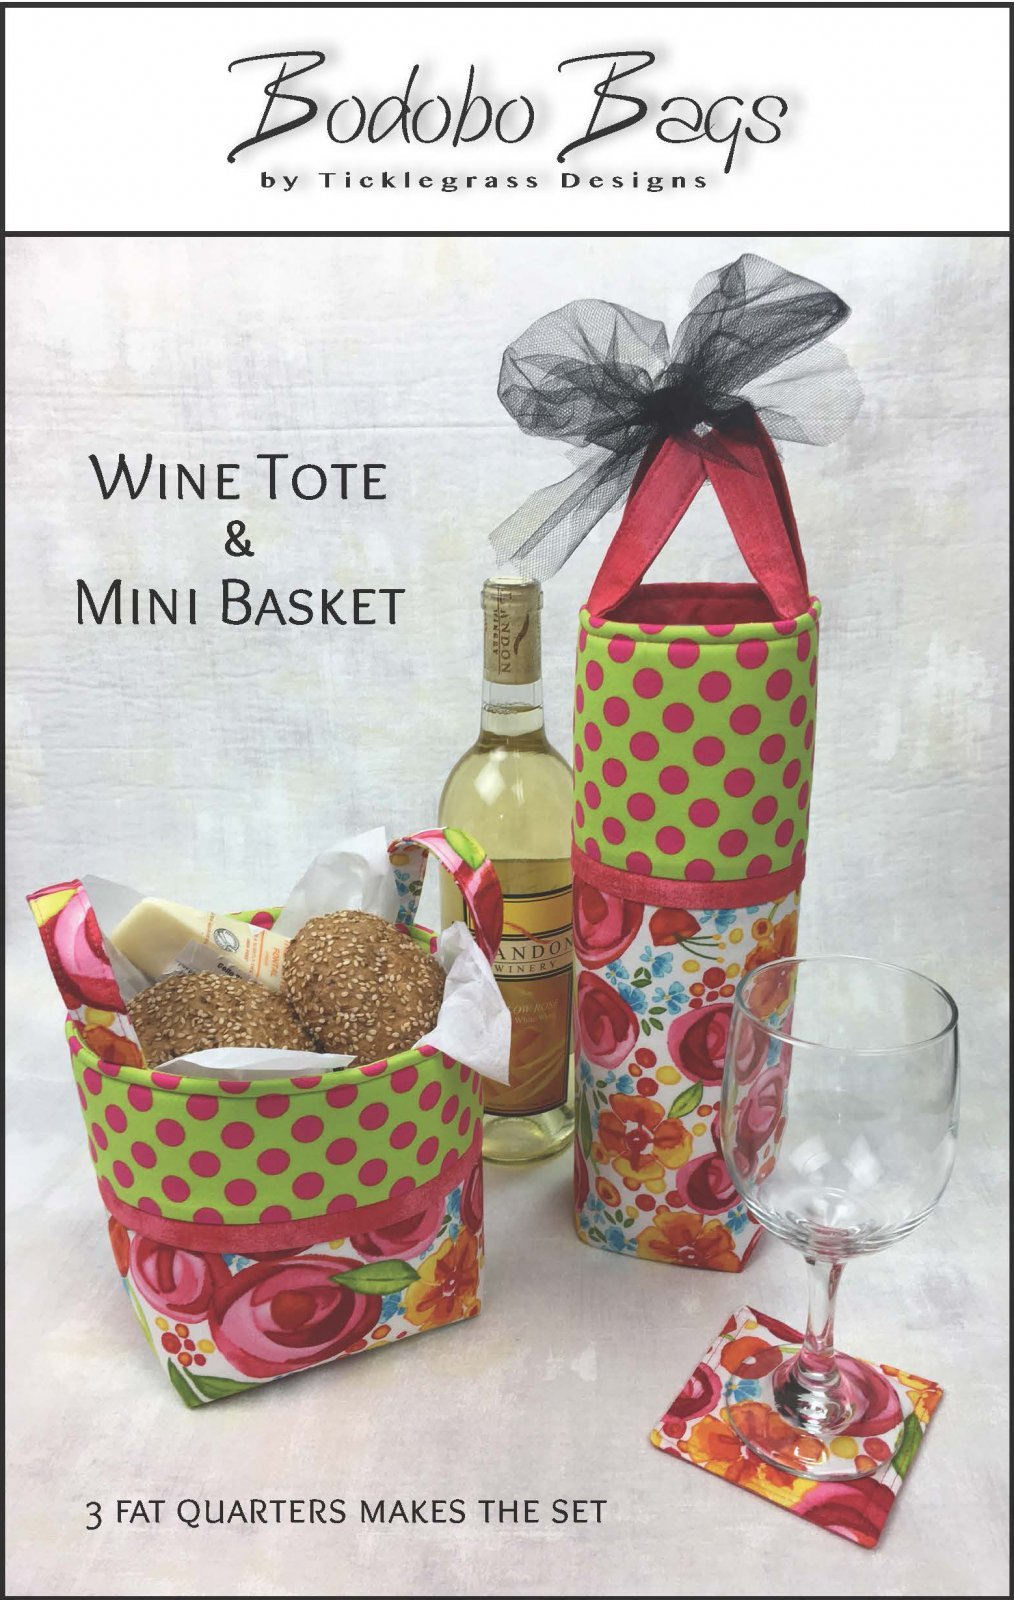 Bodobo Bags/Wine Tote & Mini Basket